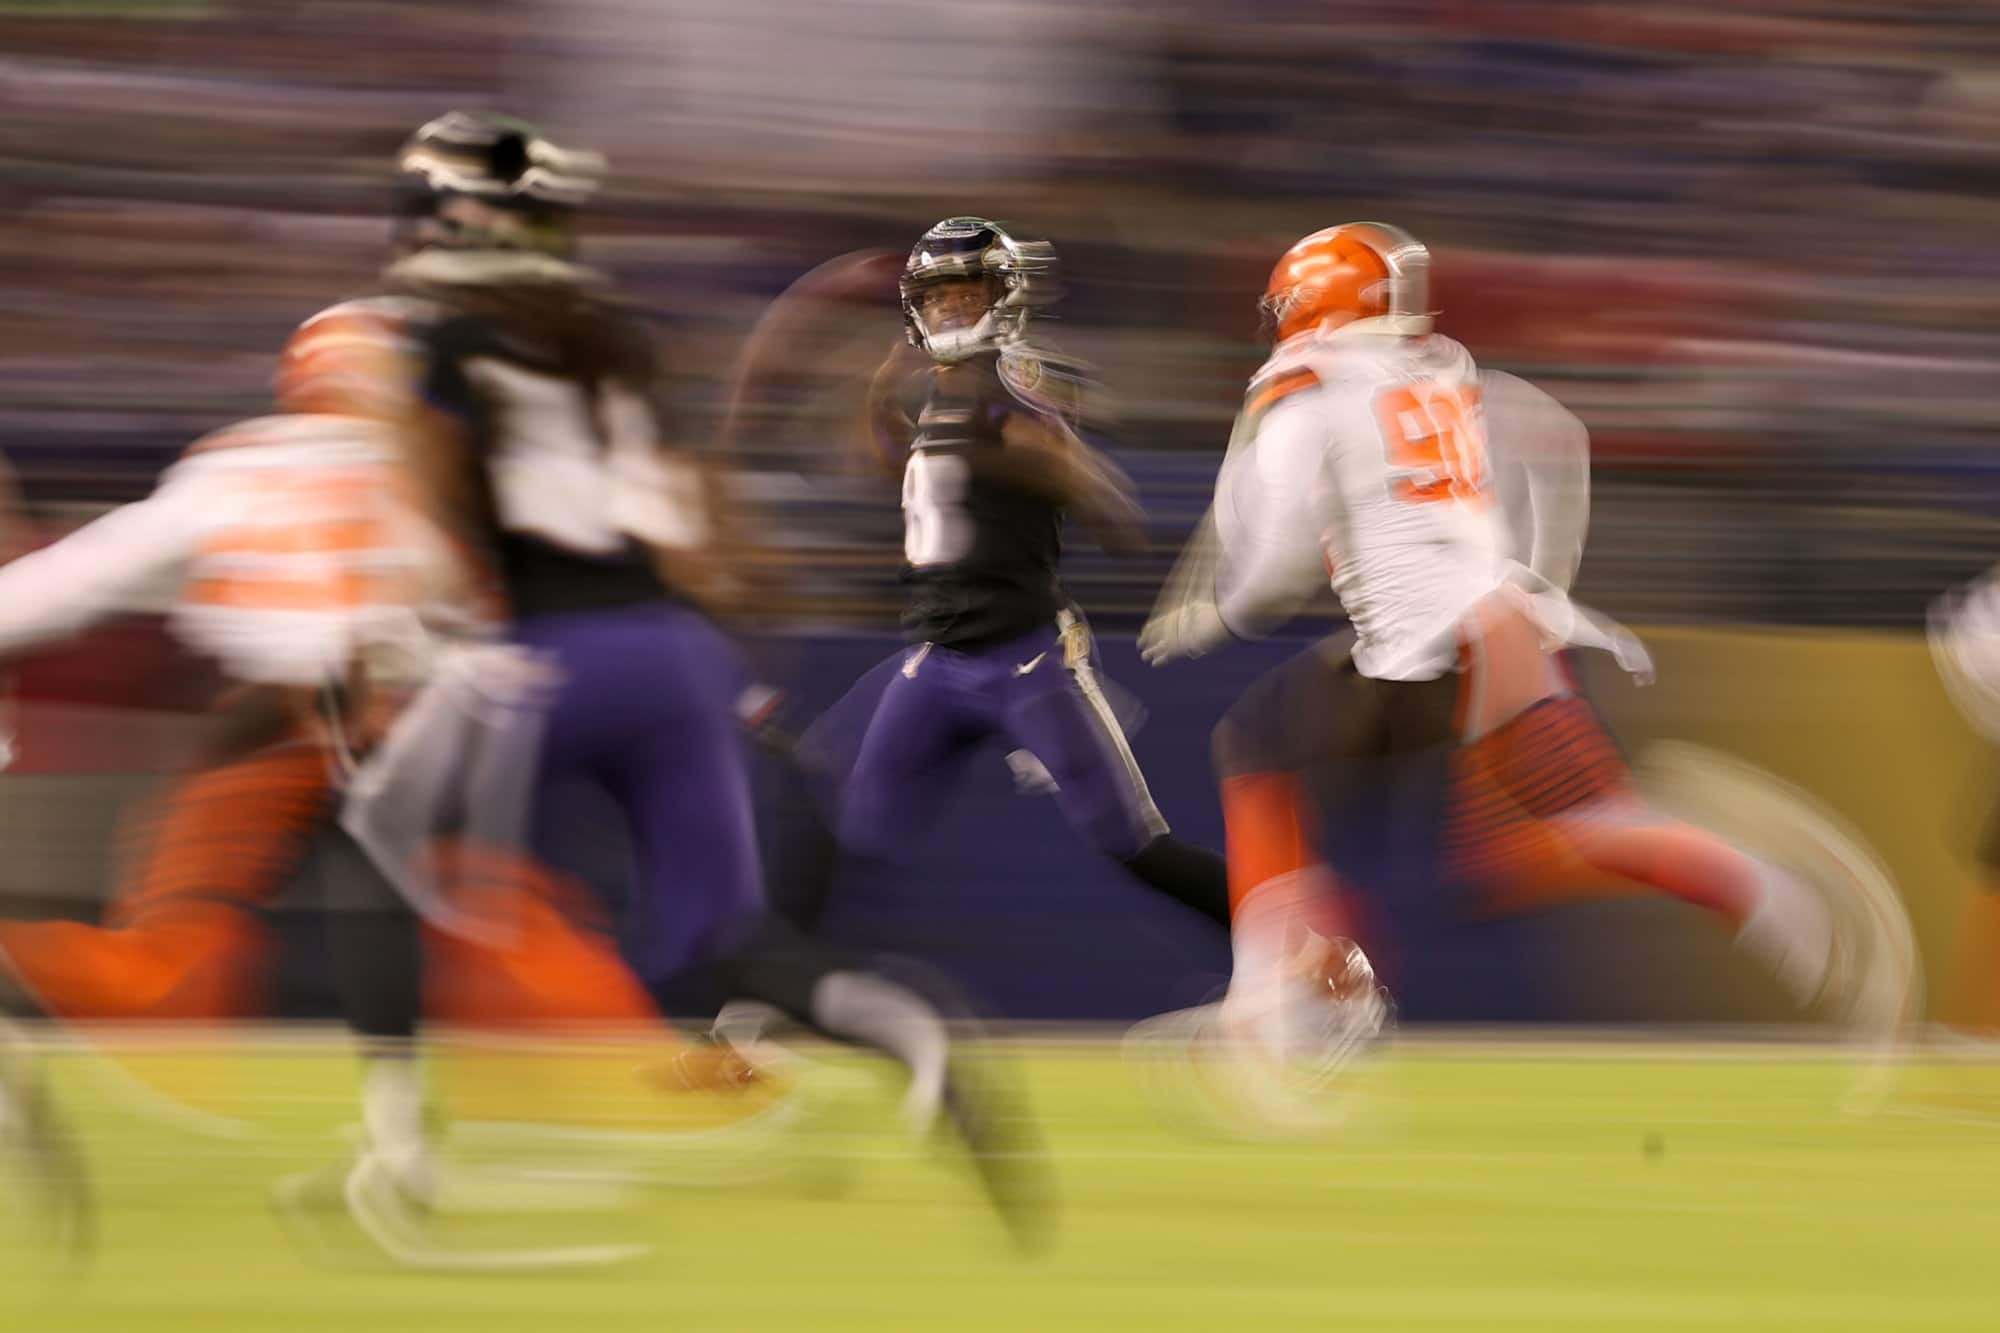 BALTIMORE, MARYLAND - DECEMBER 30: Quarterback Lamar Jackson #8 of the Baltimore Ravens looks to throw the ball in the third quarter against the Cleveland Browns at M&T Bank Stadium on December 30, 2018 in Baltimore, Maryland. (Photo by Patrick Smith/Getty Images)